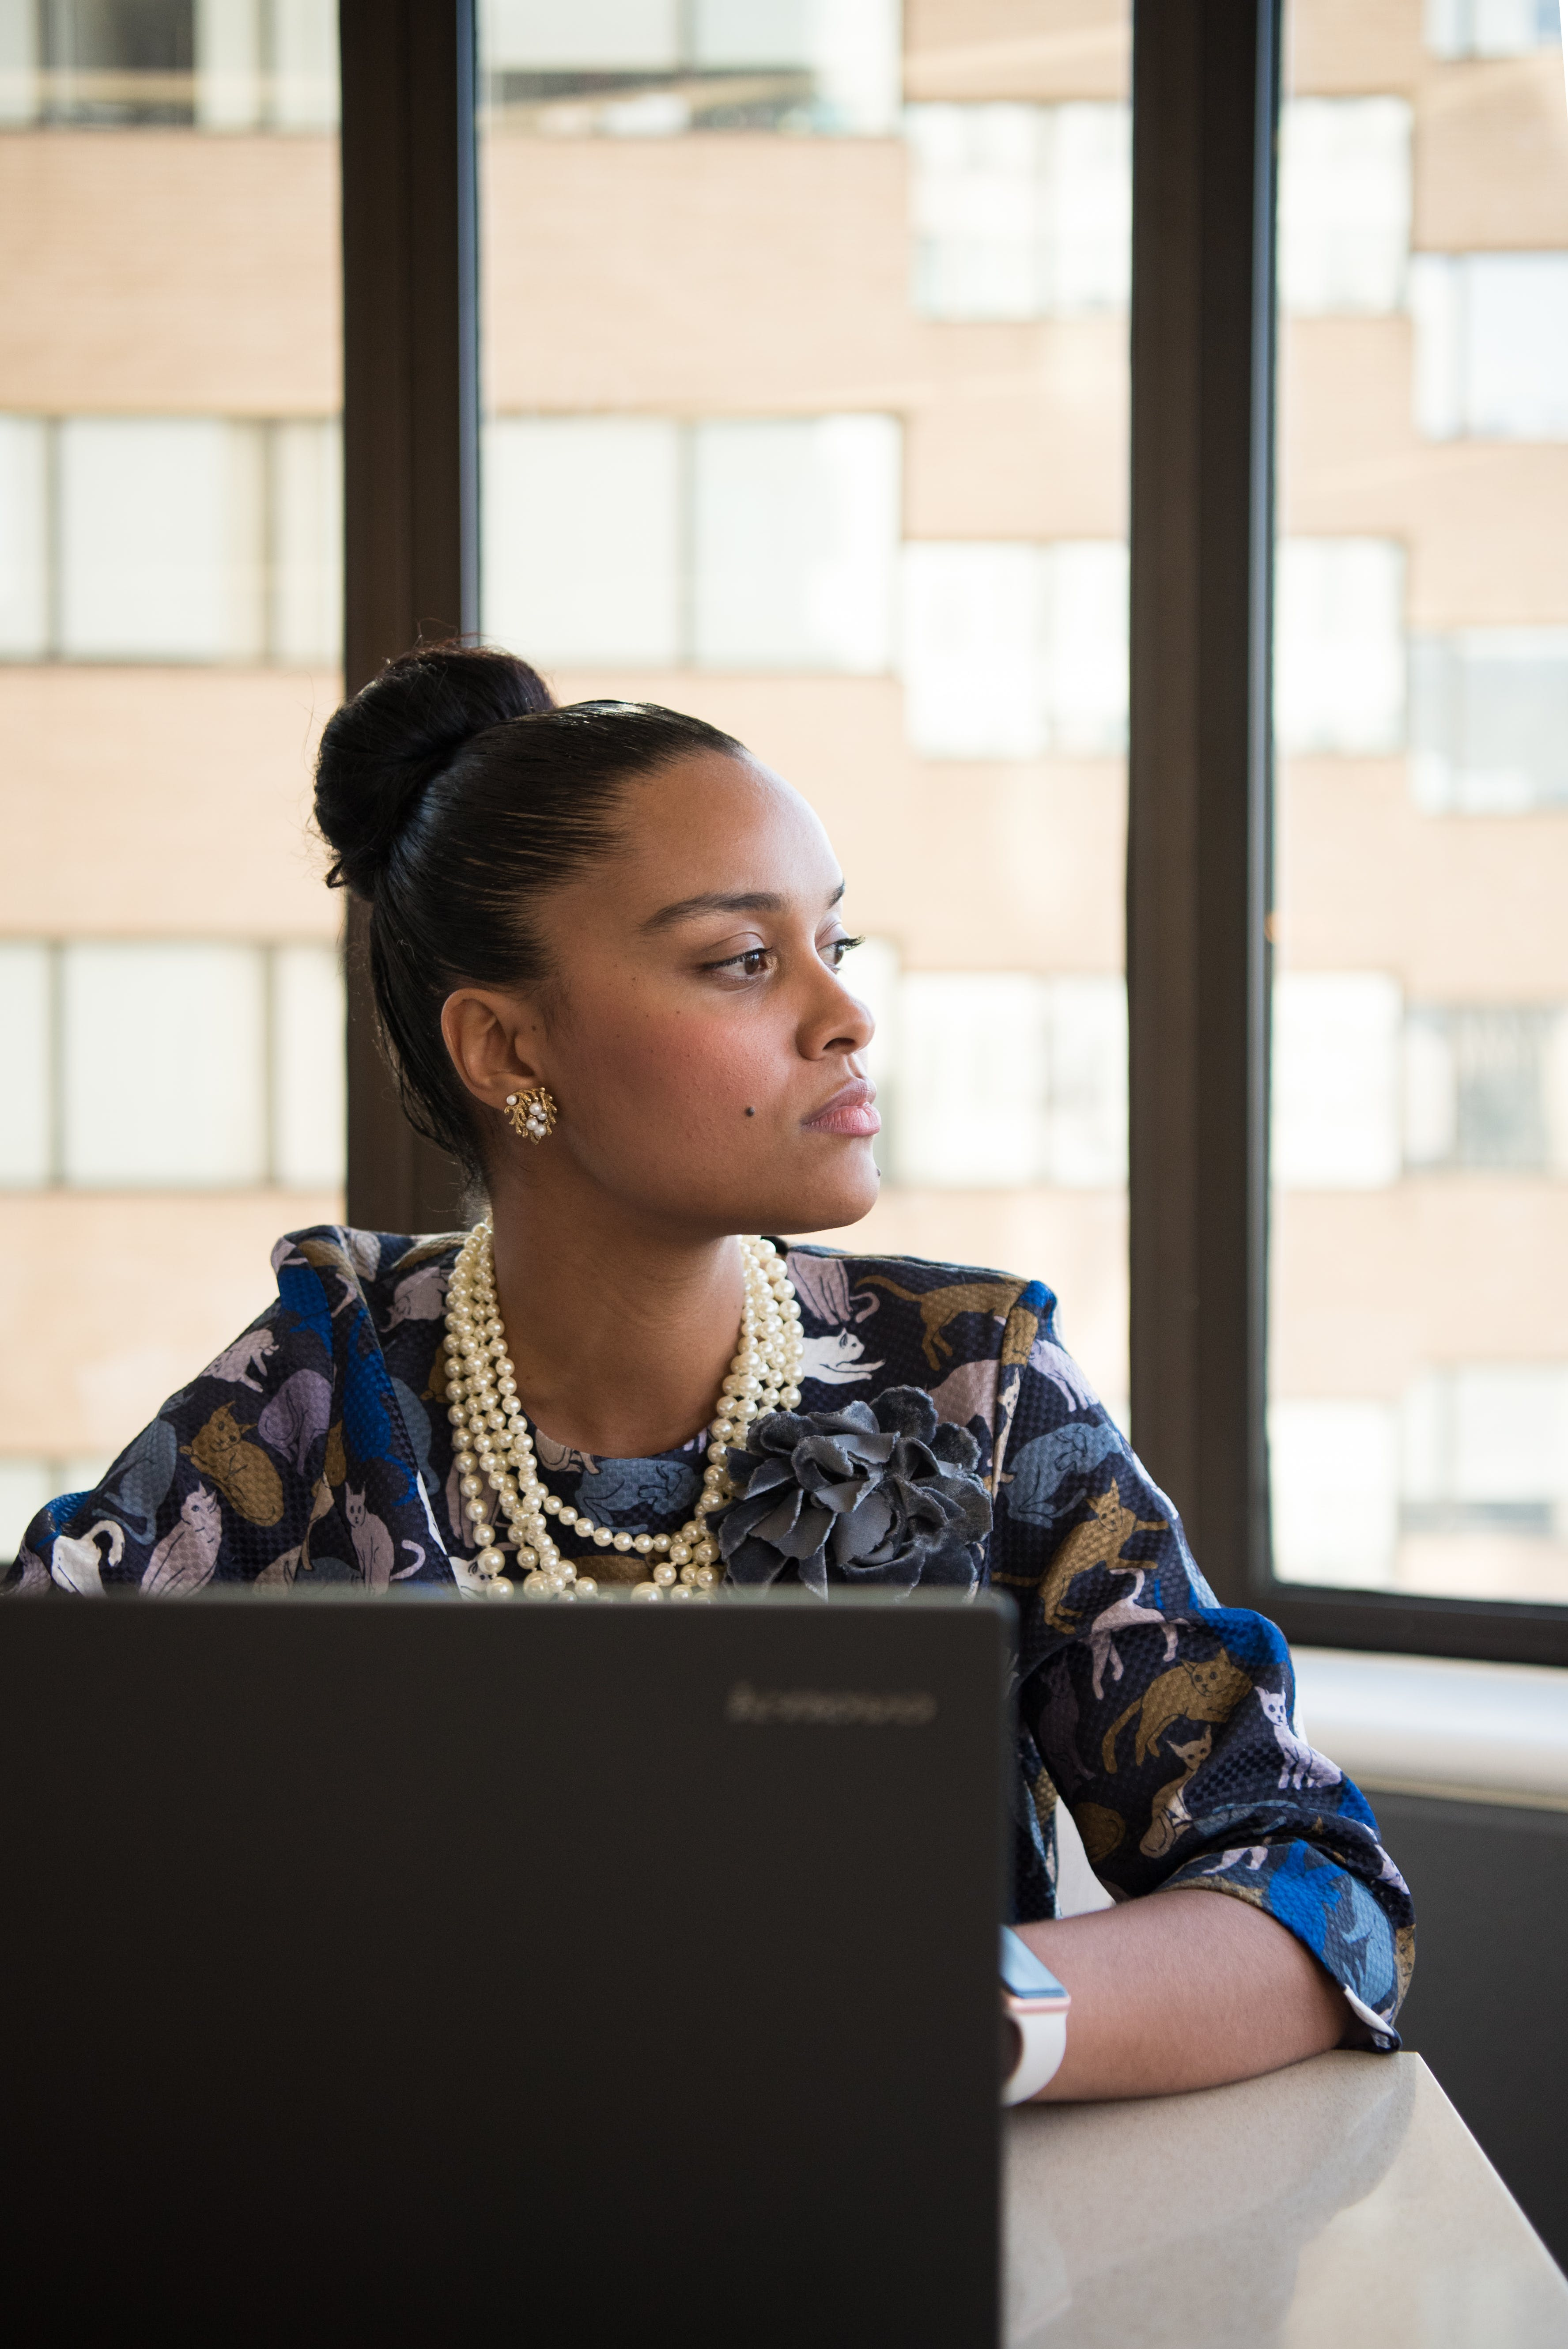 Woman Wearing Blue and Brown Floral Elbow-sleeved Dress Facing Black Lenovo Laptop Near Glass Window